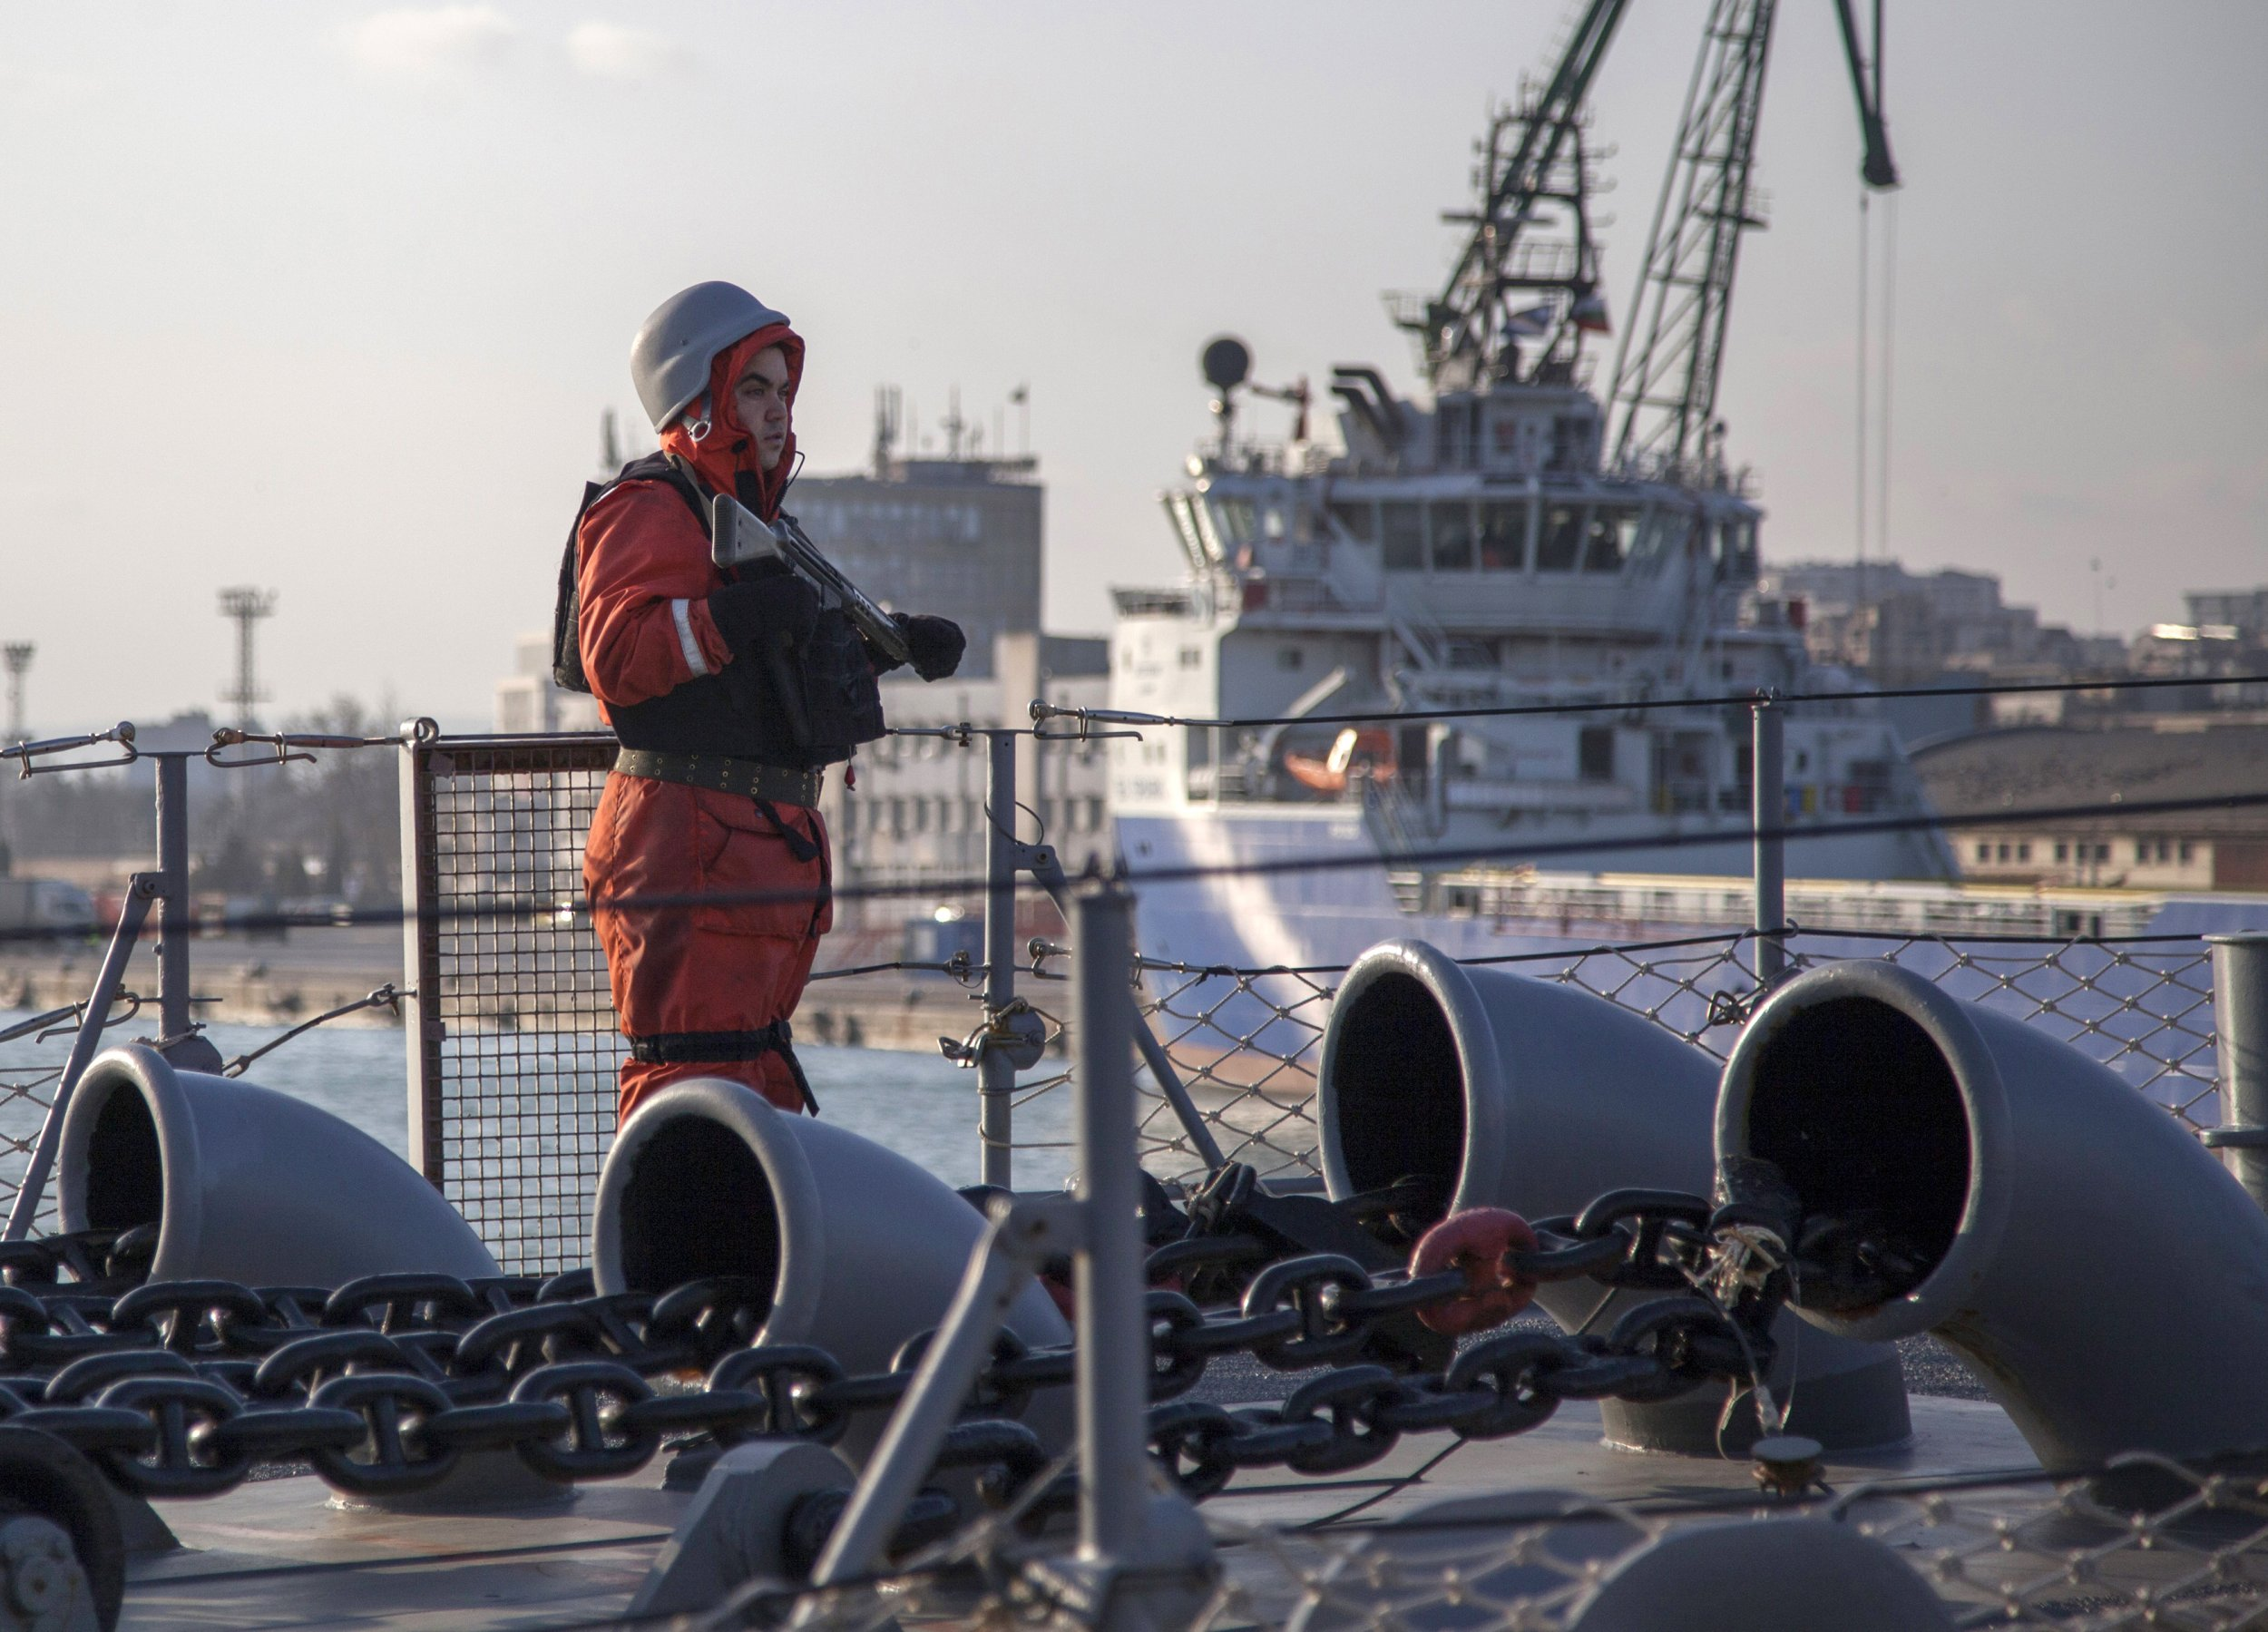 Soldier stands on Turkish Black Sea ship